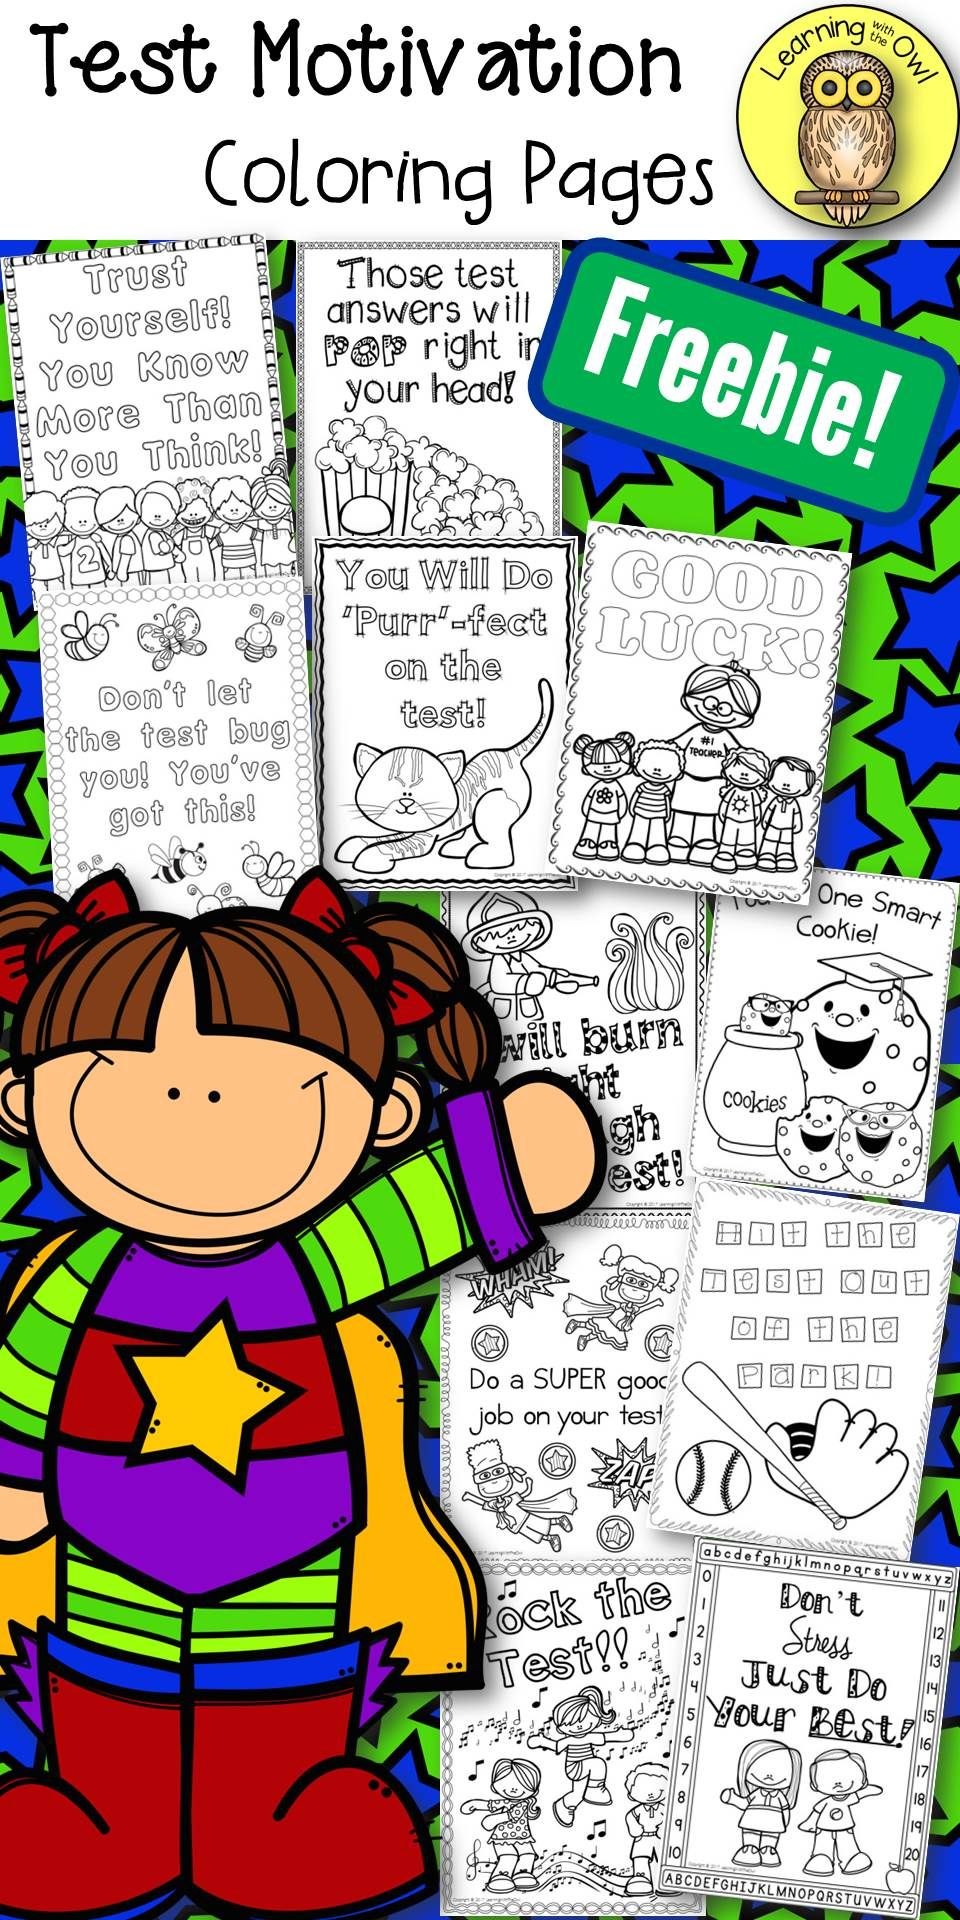 Test Motivation Coloring Sheets FREEBIE Great For Taking Time